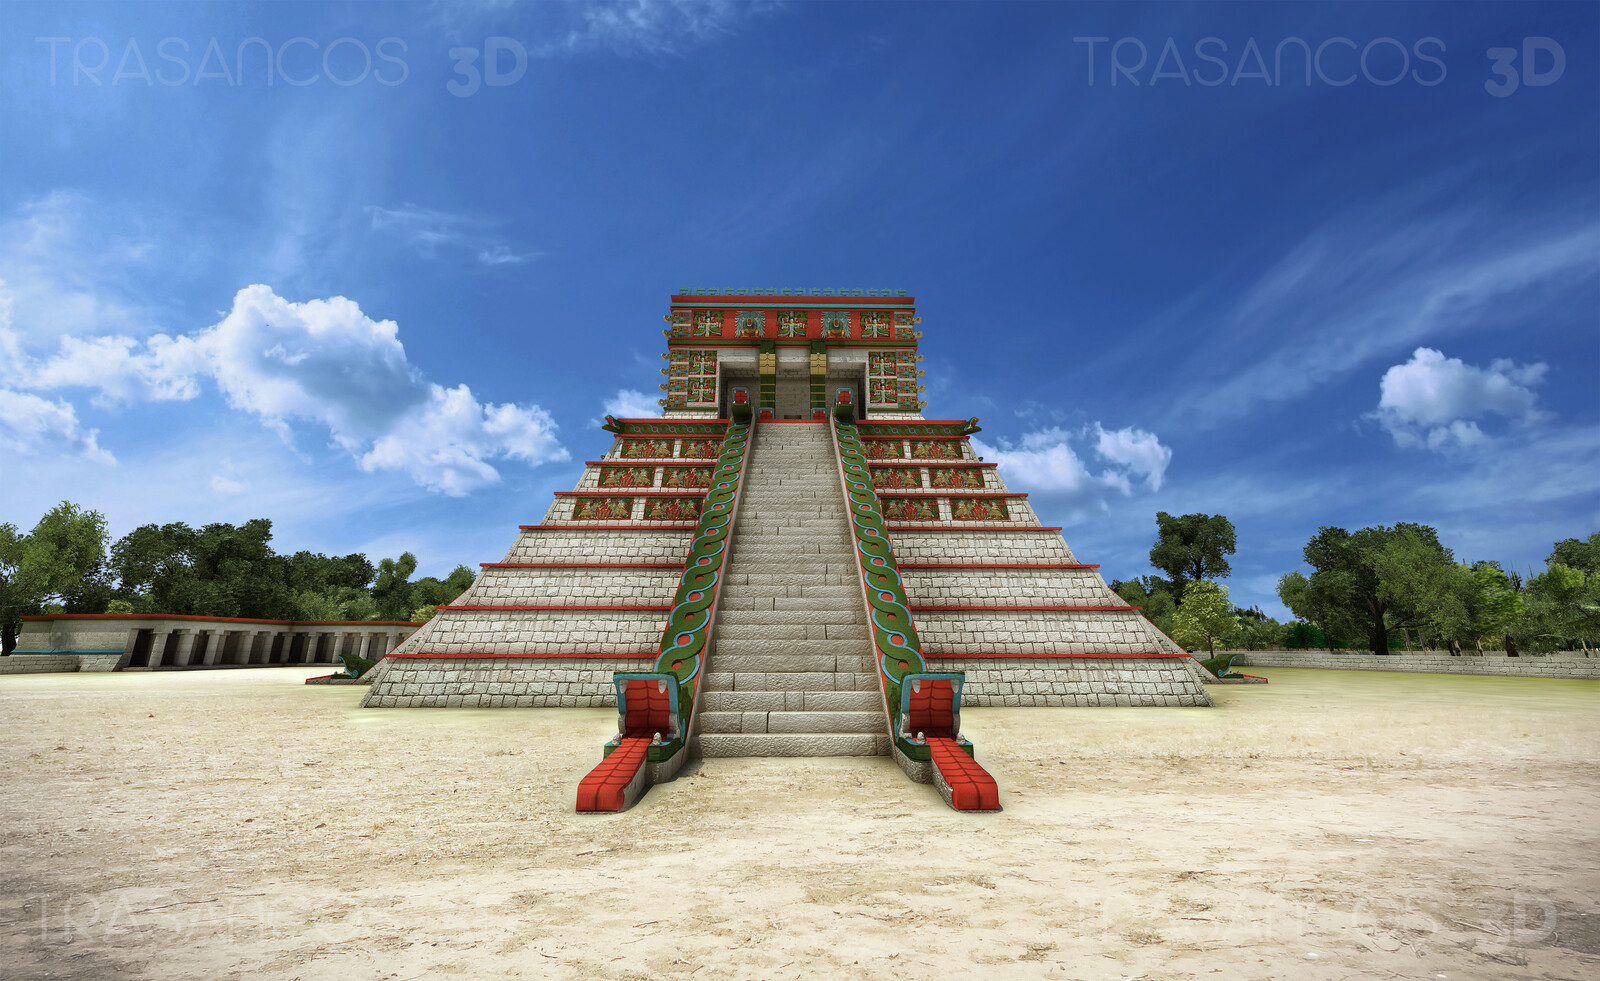 Osario pyramid in Chichen Itza. Modeled in collaboration with: - Andrés Armesto